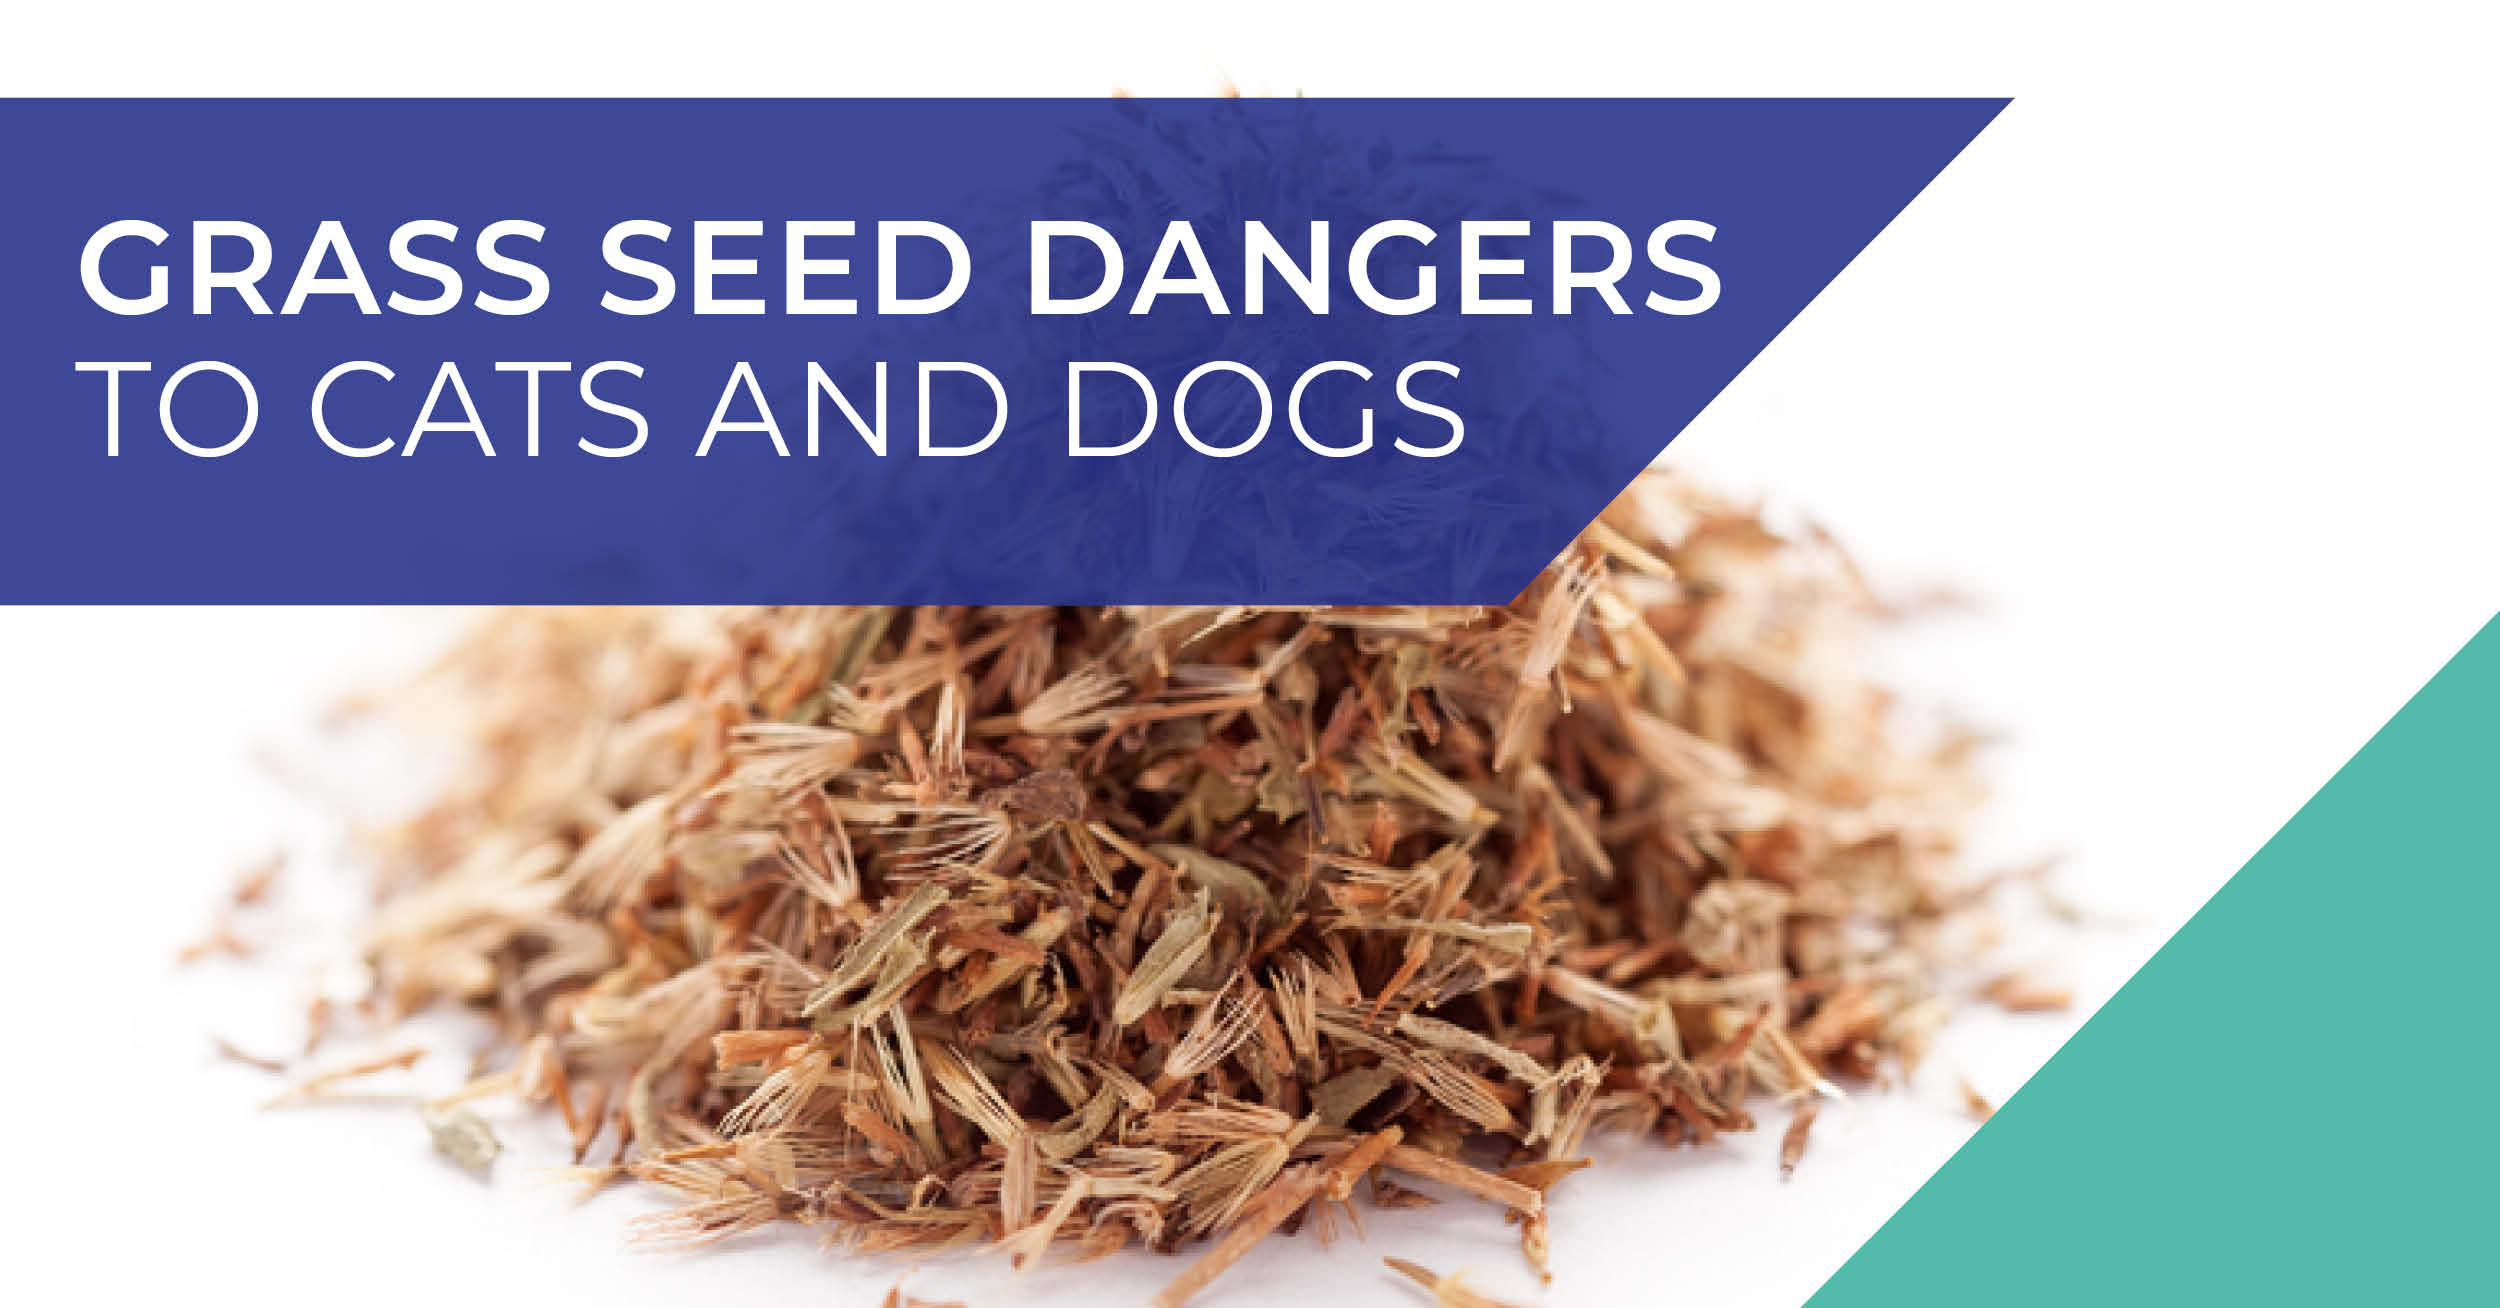 Grass seed dangers to cats and dogs